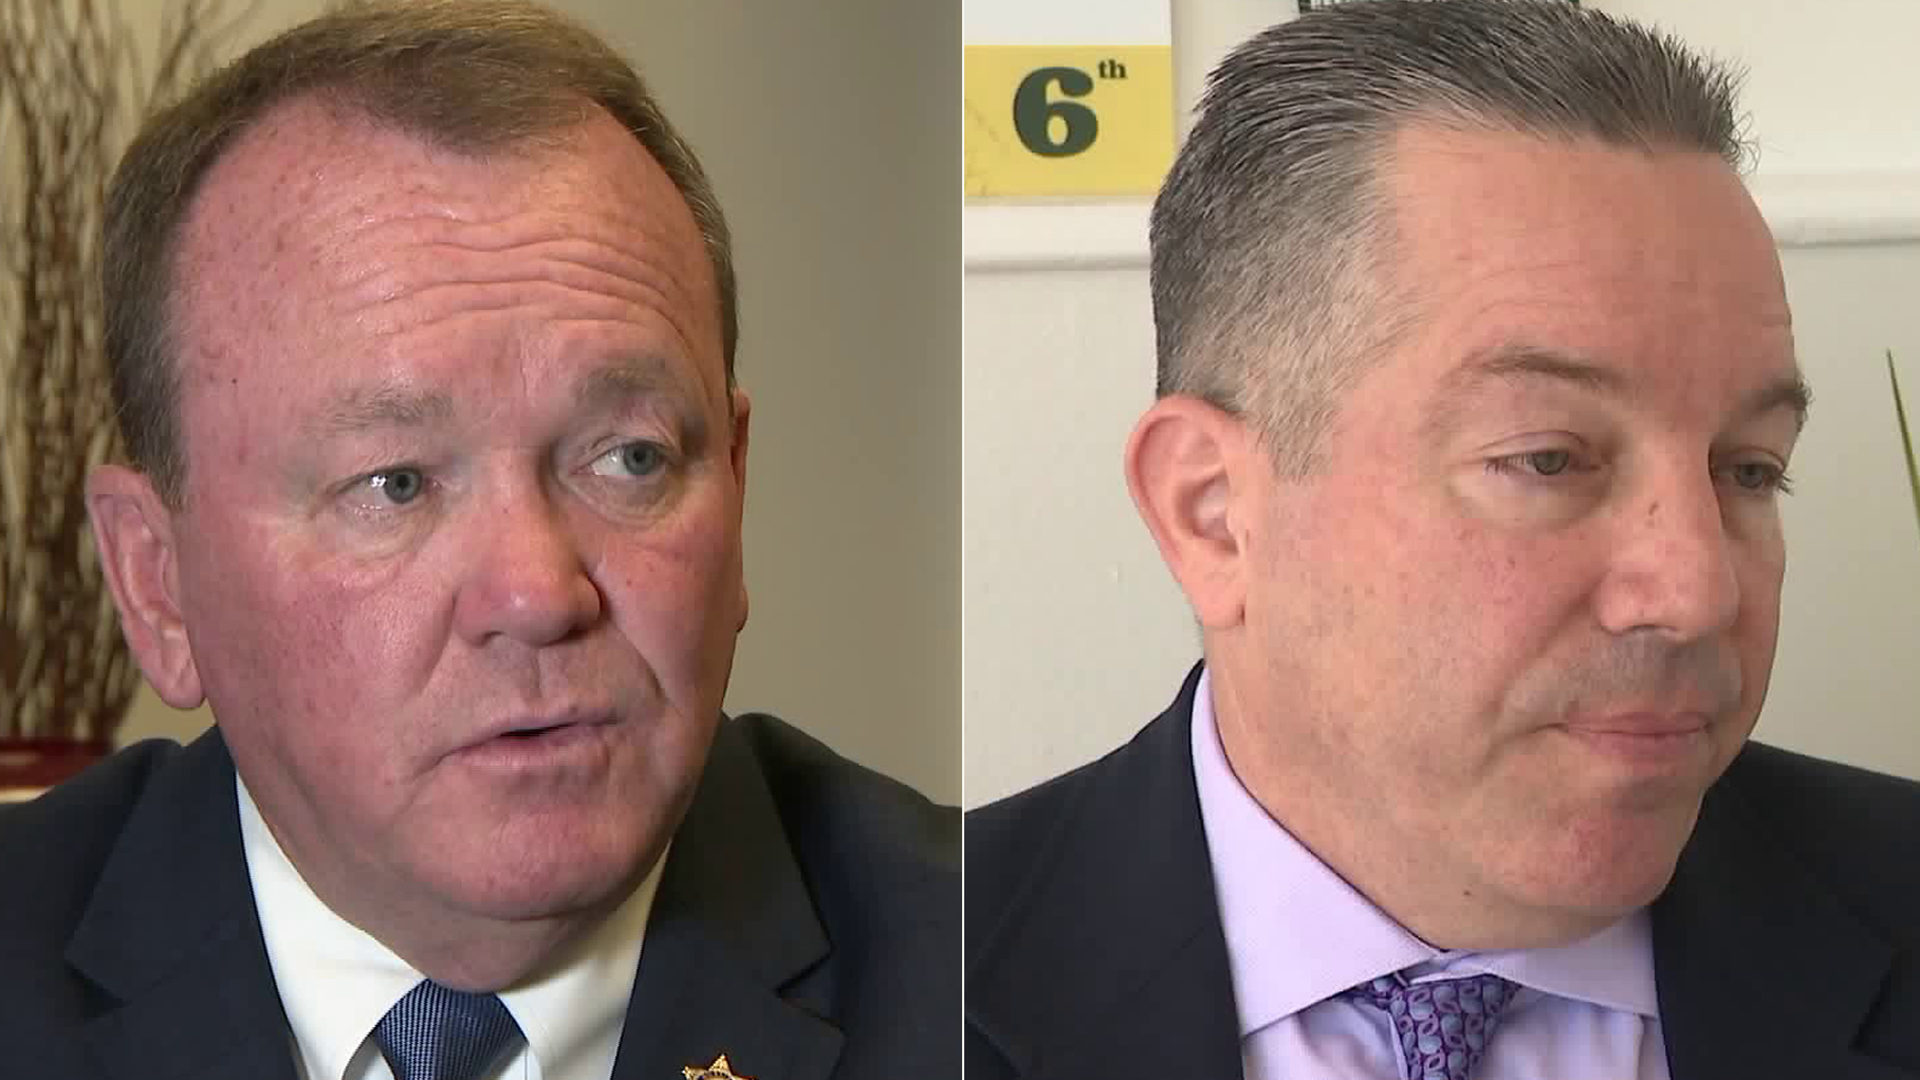 Left, L.A. County Sheriff Jim McDonnell, and, right, retired sheriff's Lt. Alex Villanueva, are seen during interviews in October 2018. (Credit: KTLA)